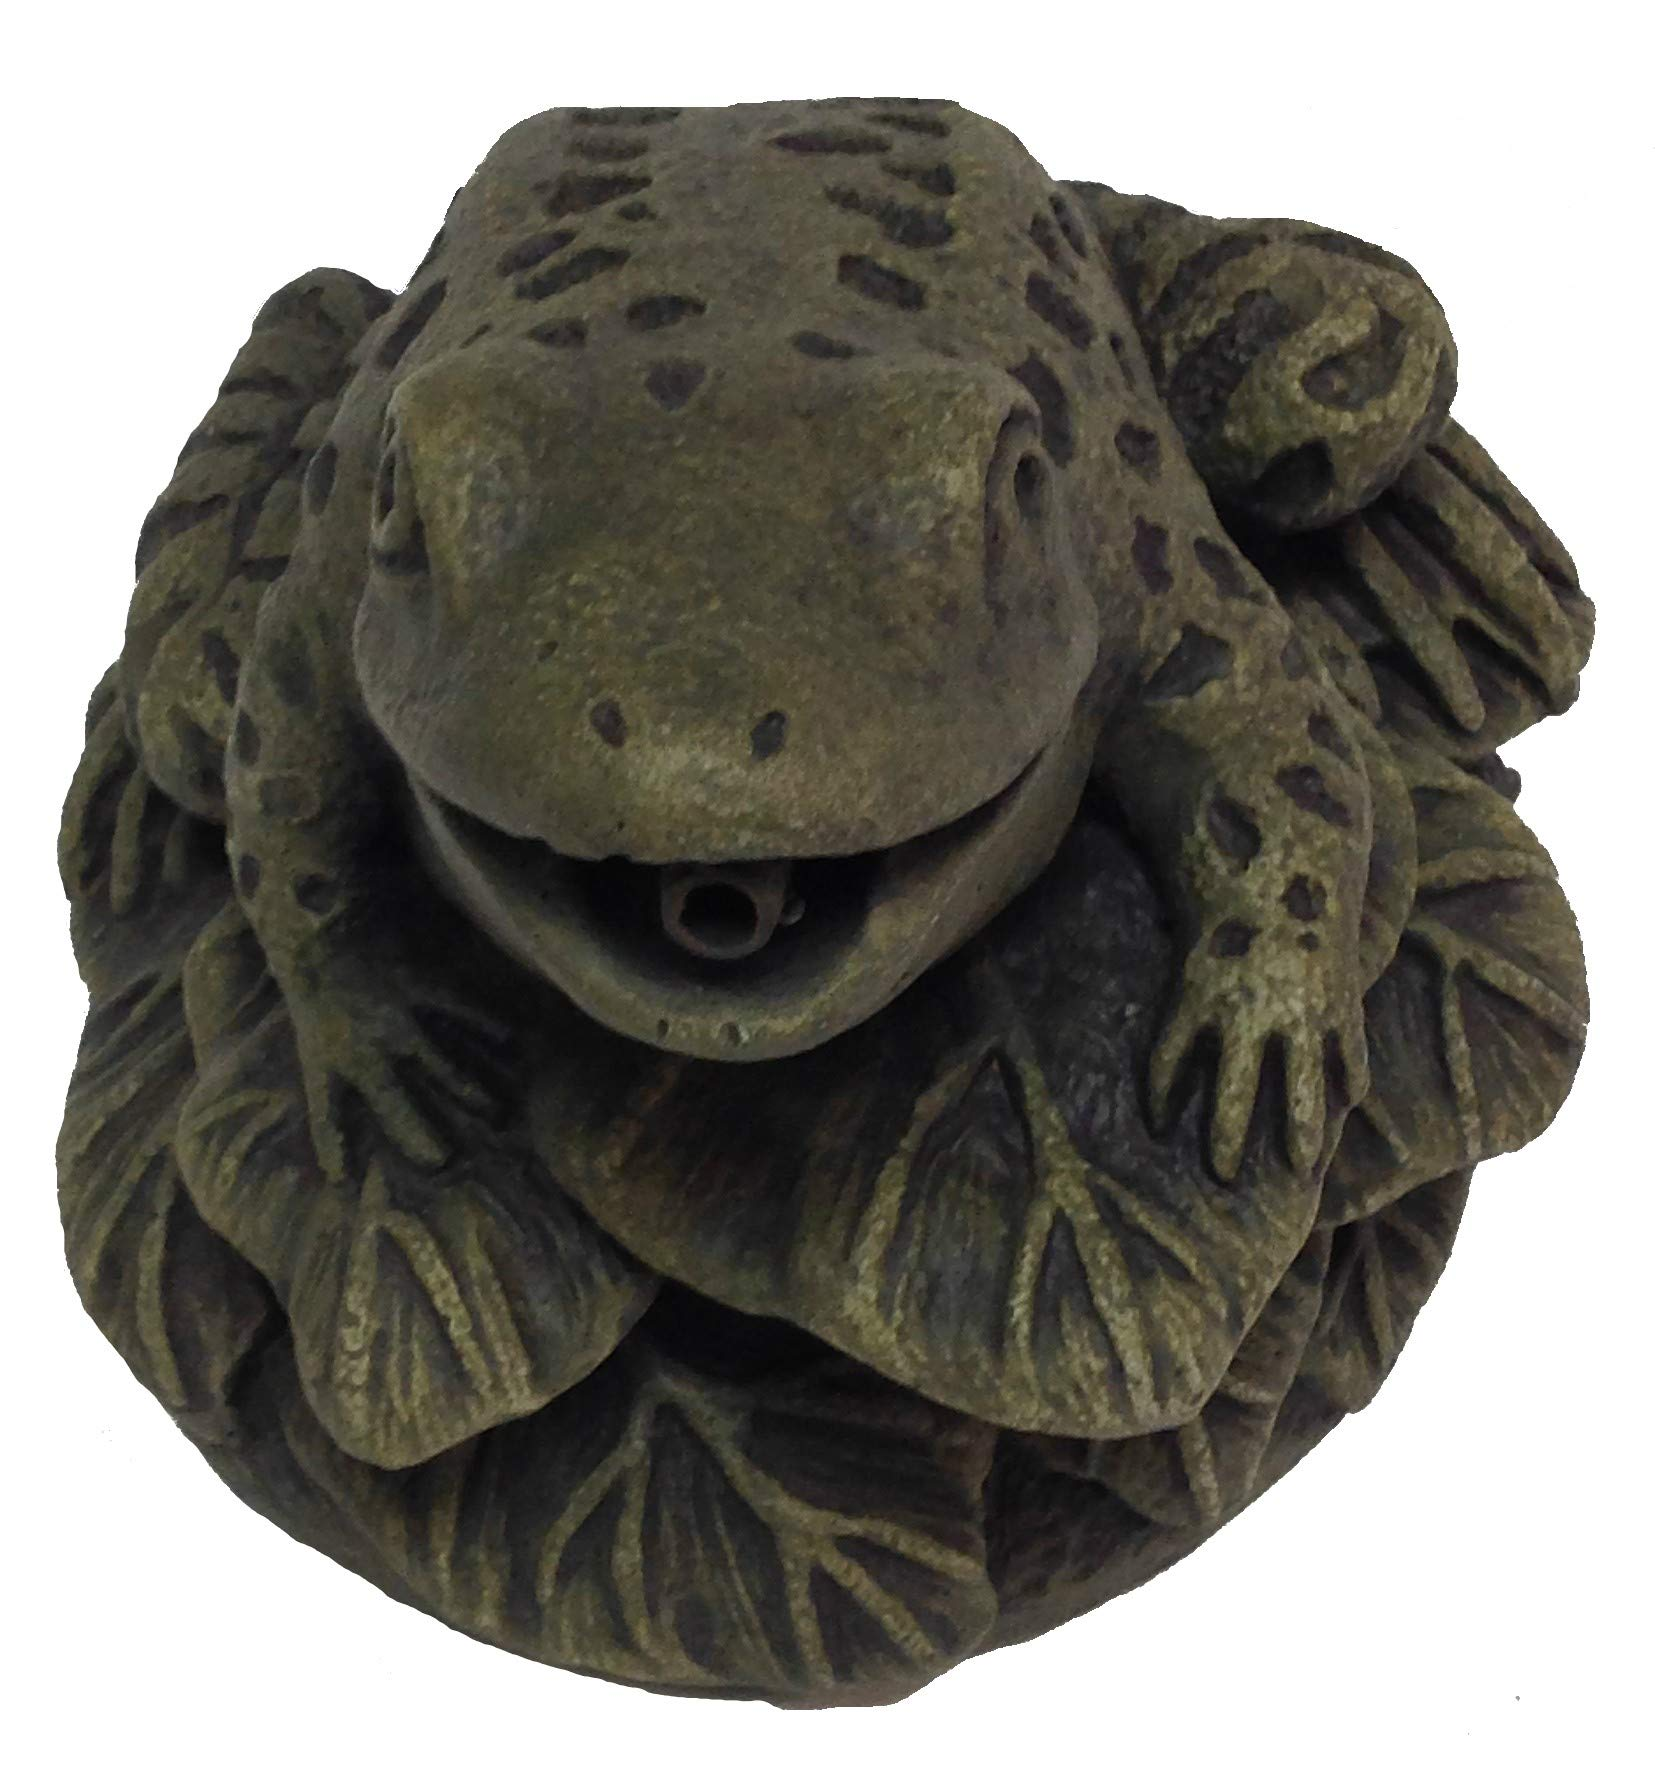 Massarelli's Frog On Leaves Plumbed Spitter - Solid Cast Stone Lifelike Statue, Great Pond and Garden Gift Idea, Durable and Fun Sculpture Art by Massarelli's (Image #2)